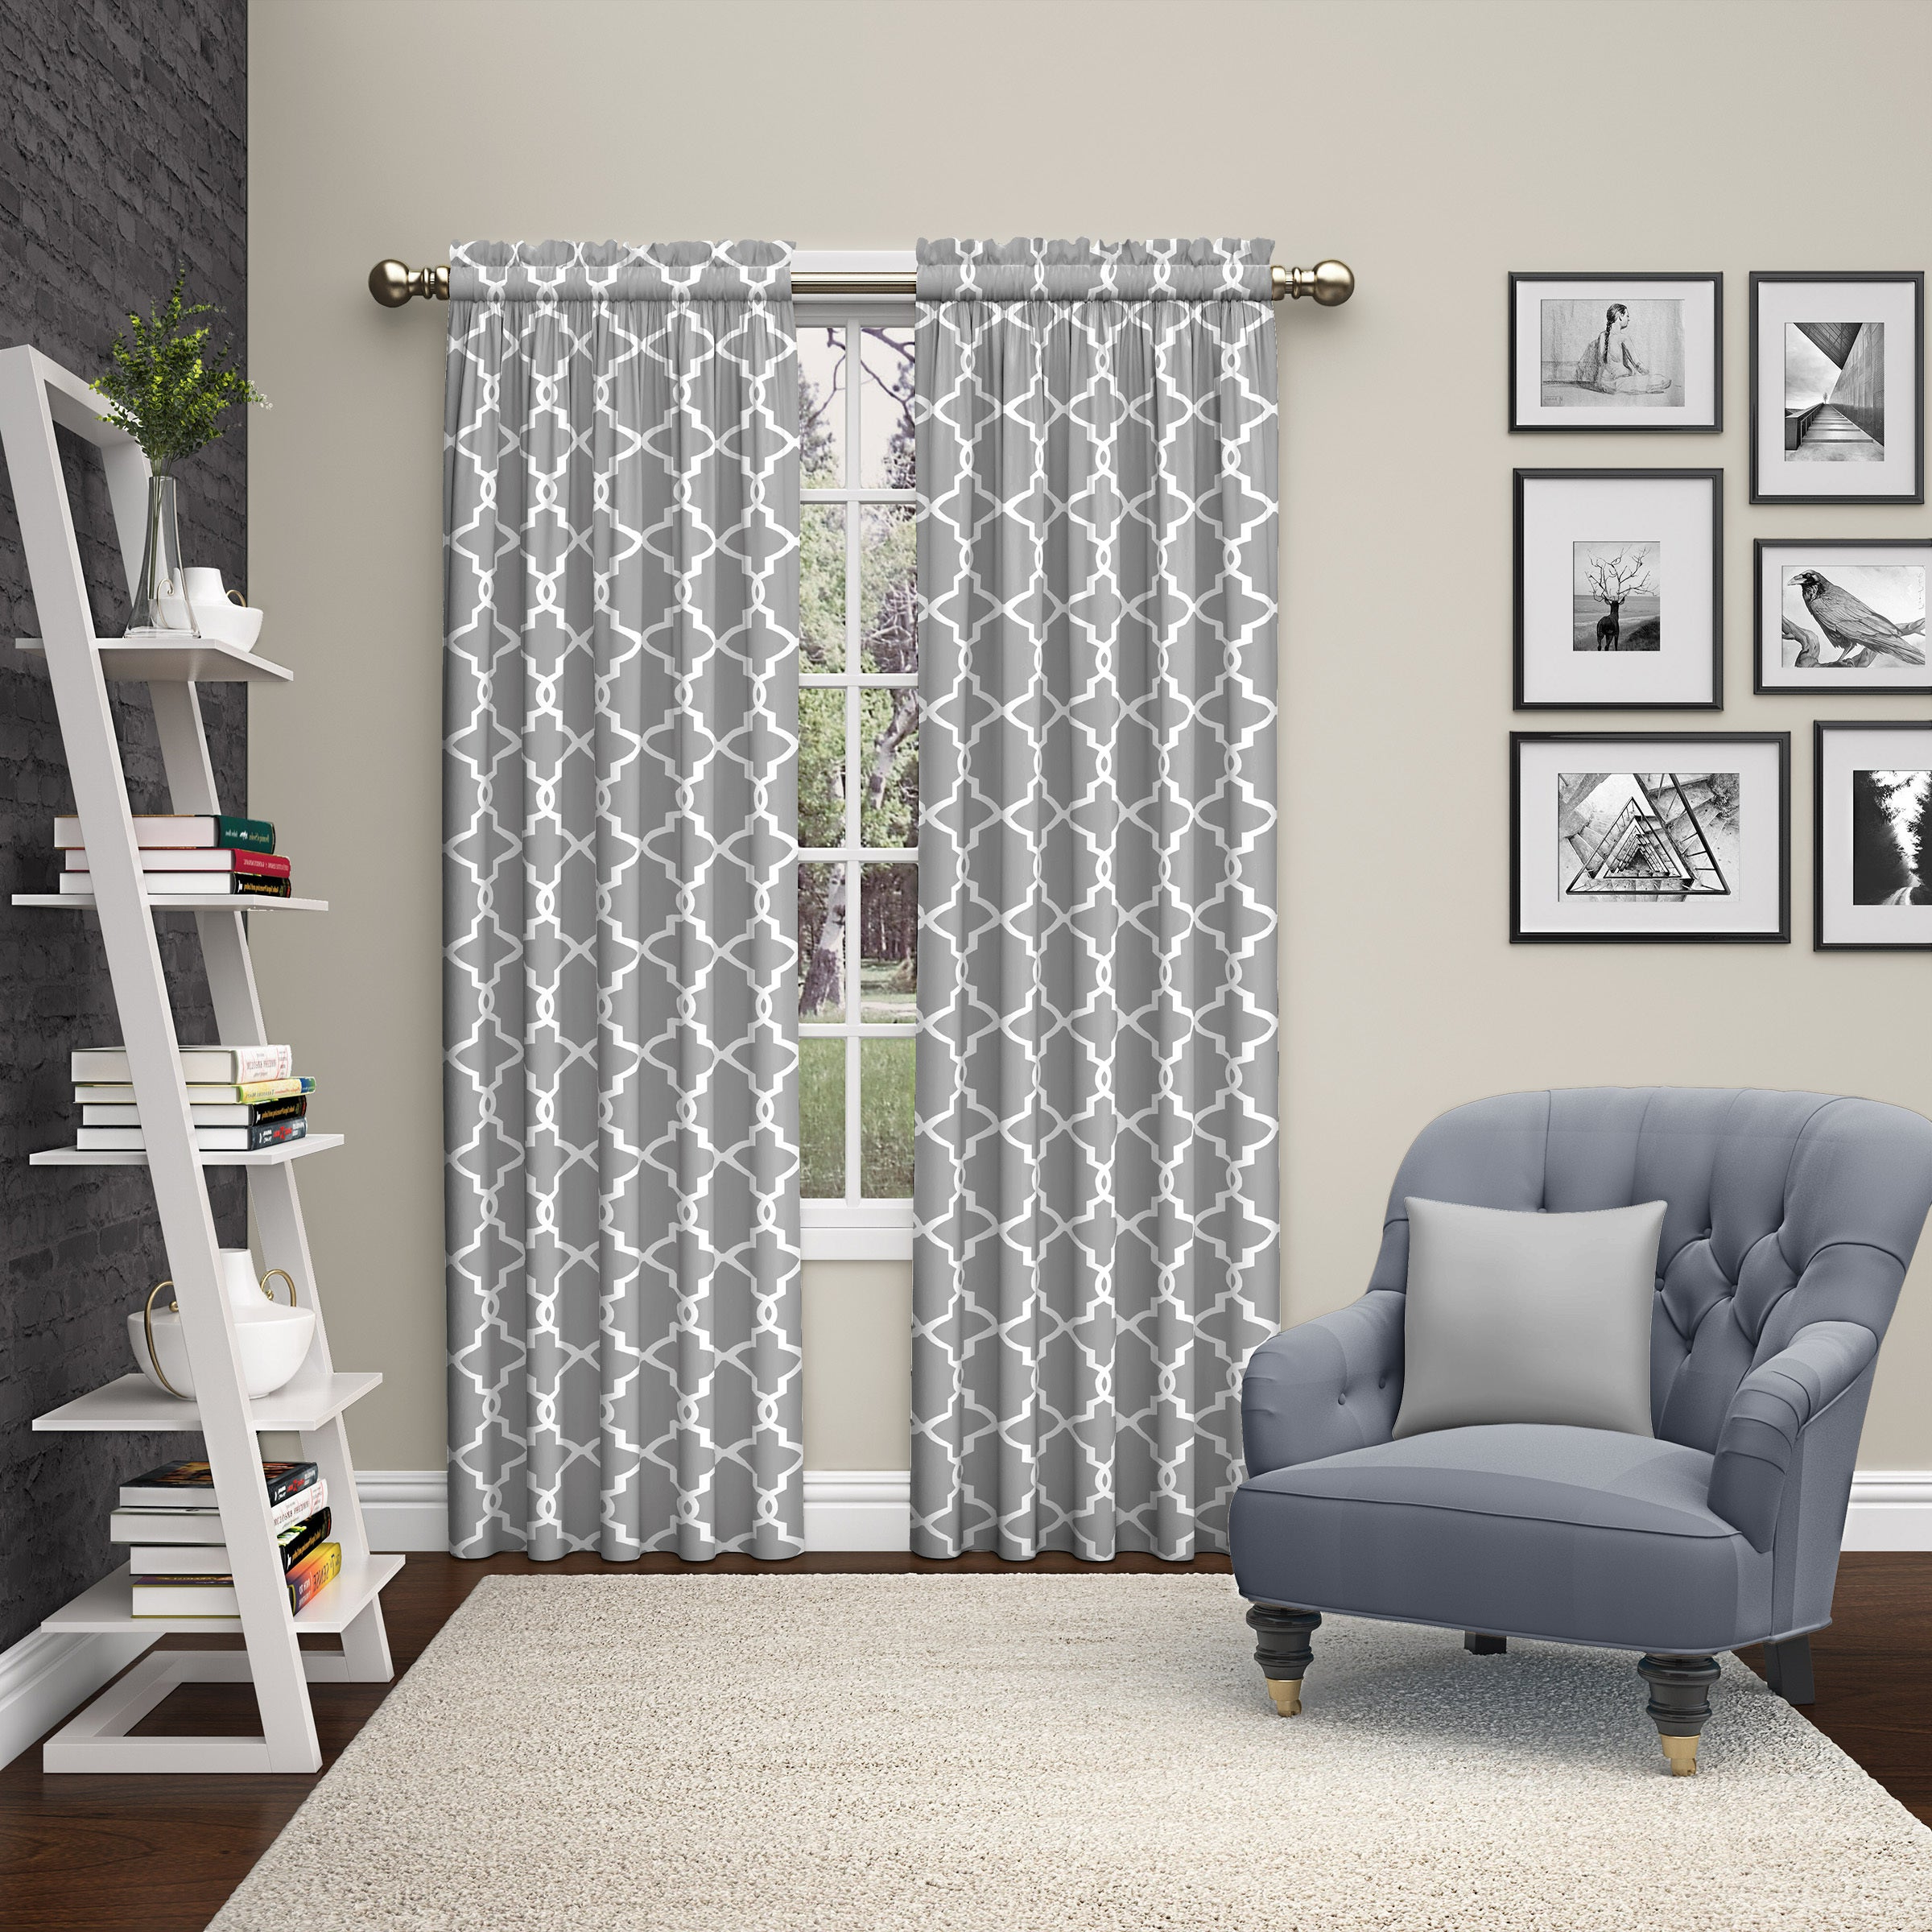 Caldwell Curtain Panel Pairs Pertaining To Preferred Pairs To Go Vickery Rod Pocket Curtain Panel Pair (View 4 of 20)